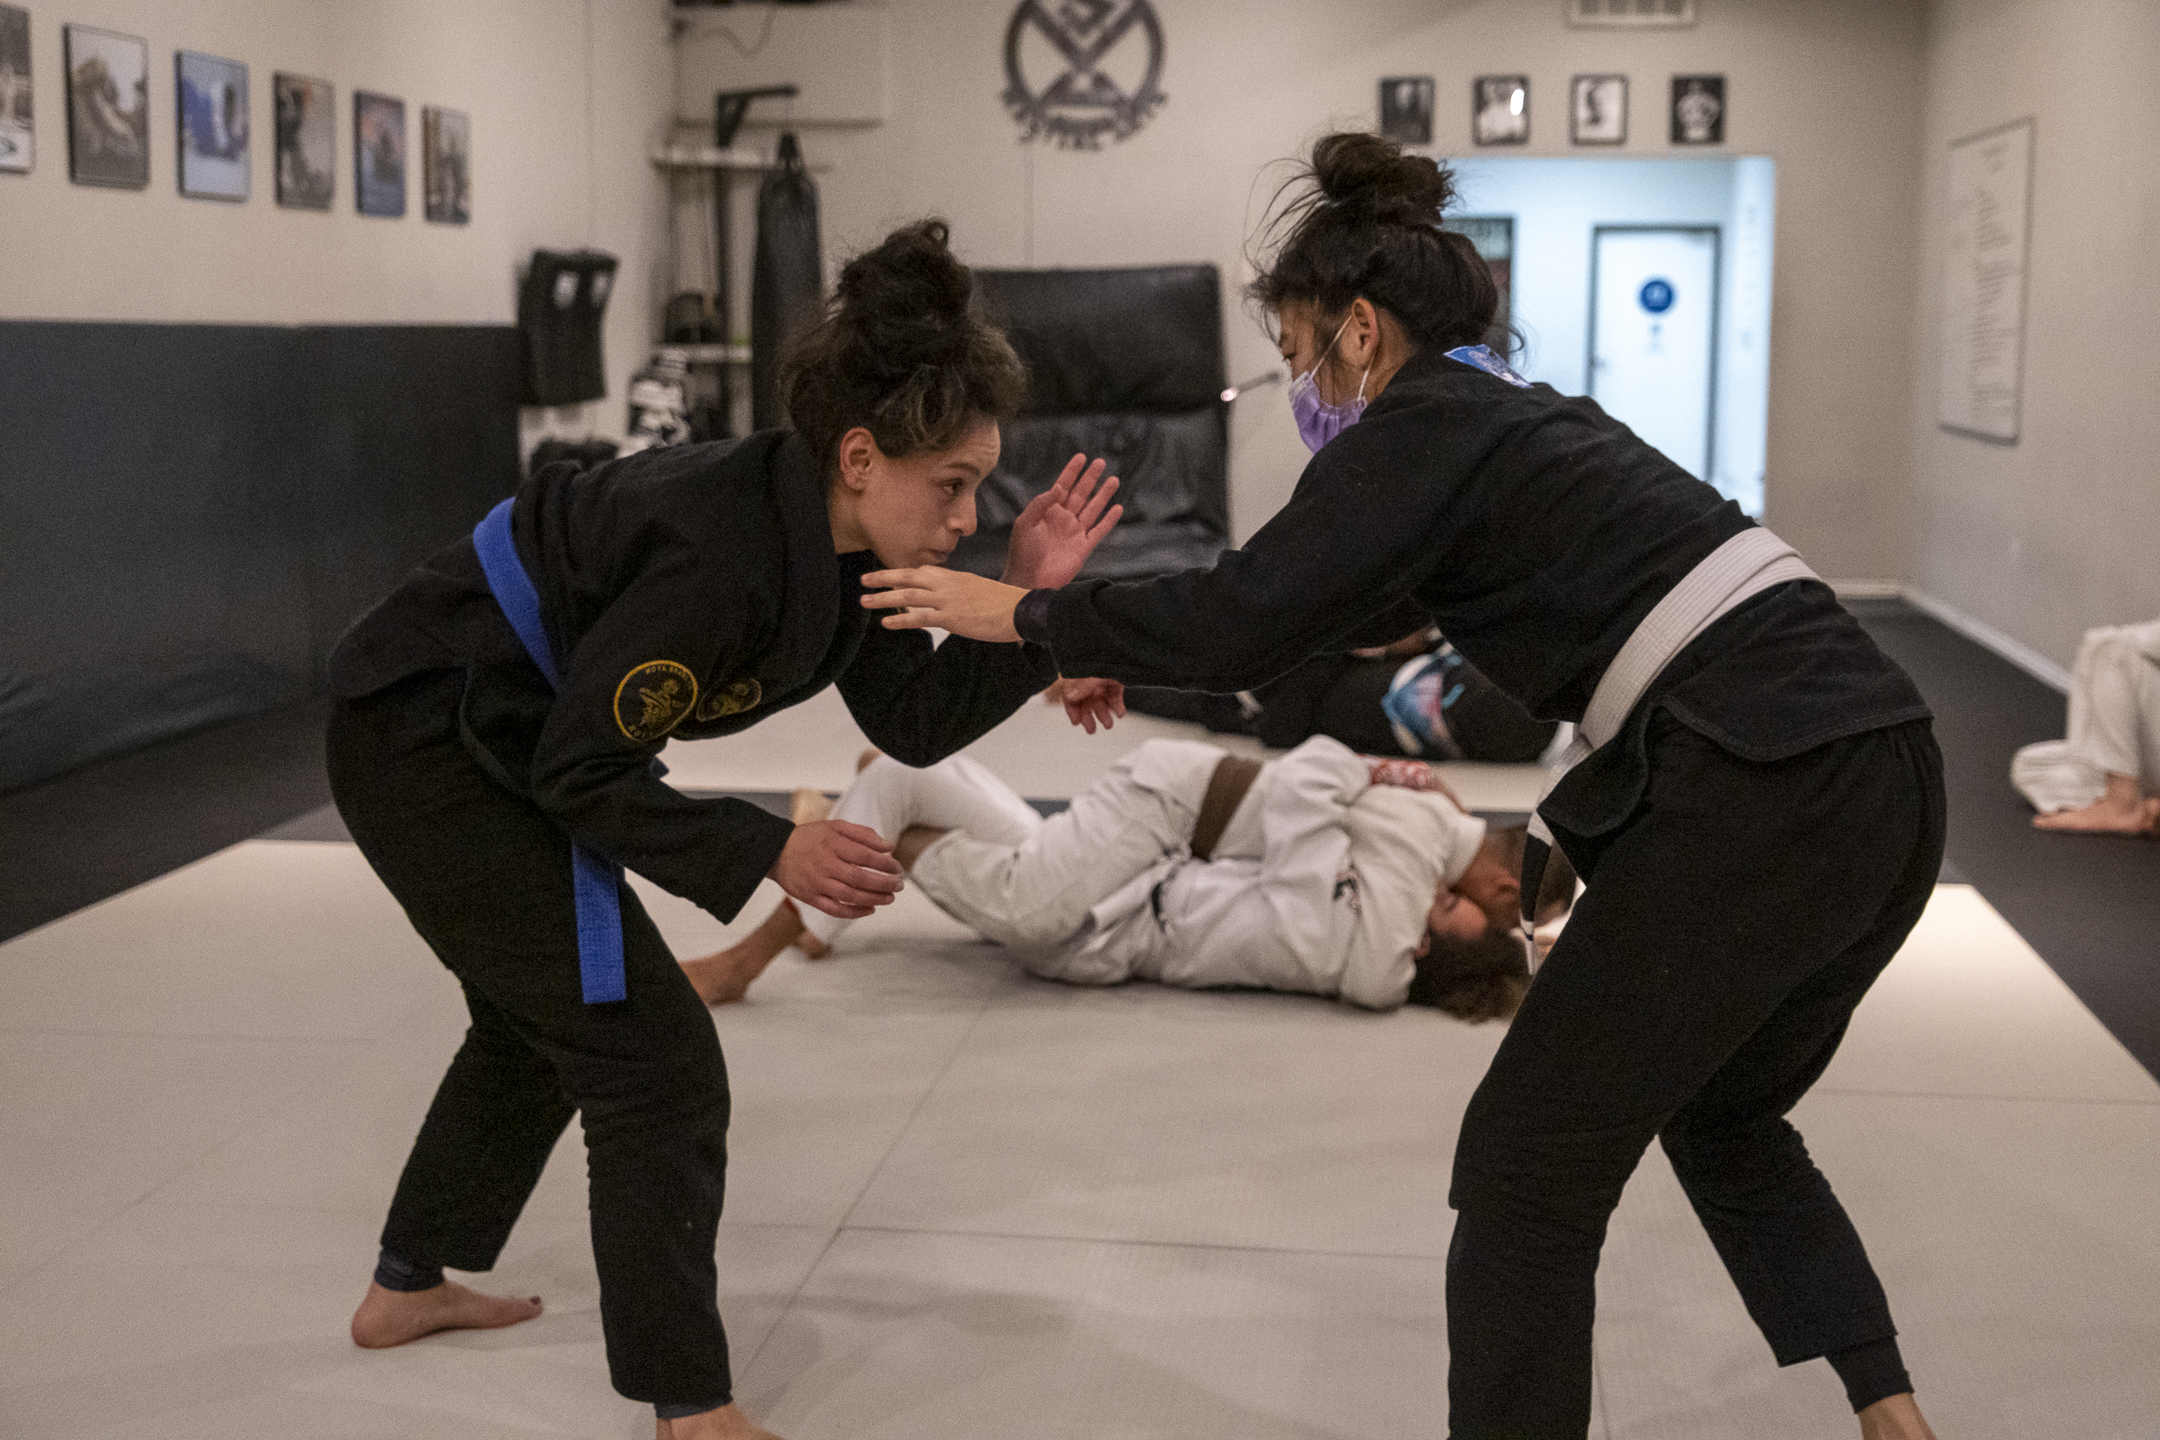 Professor Gino showing the Jiu-Jitsu techniques in the all levels class.